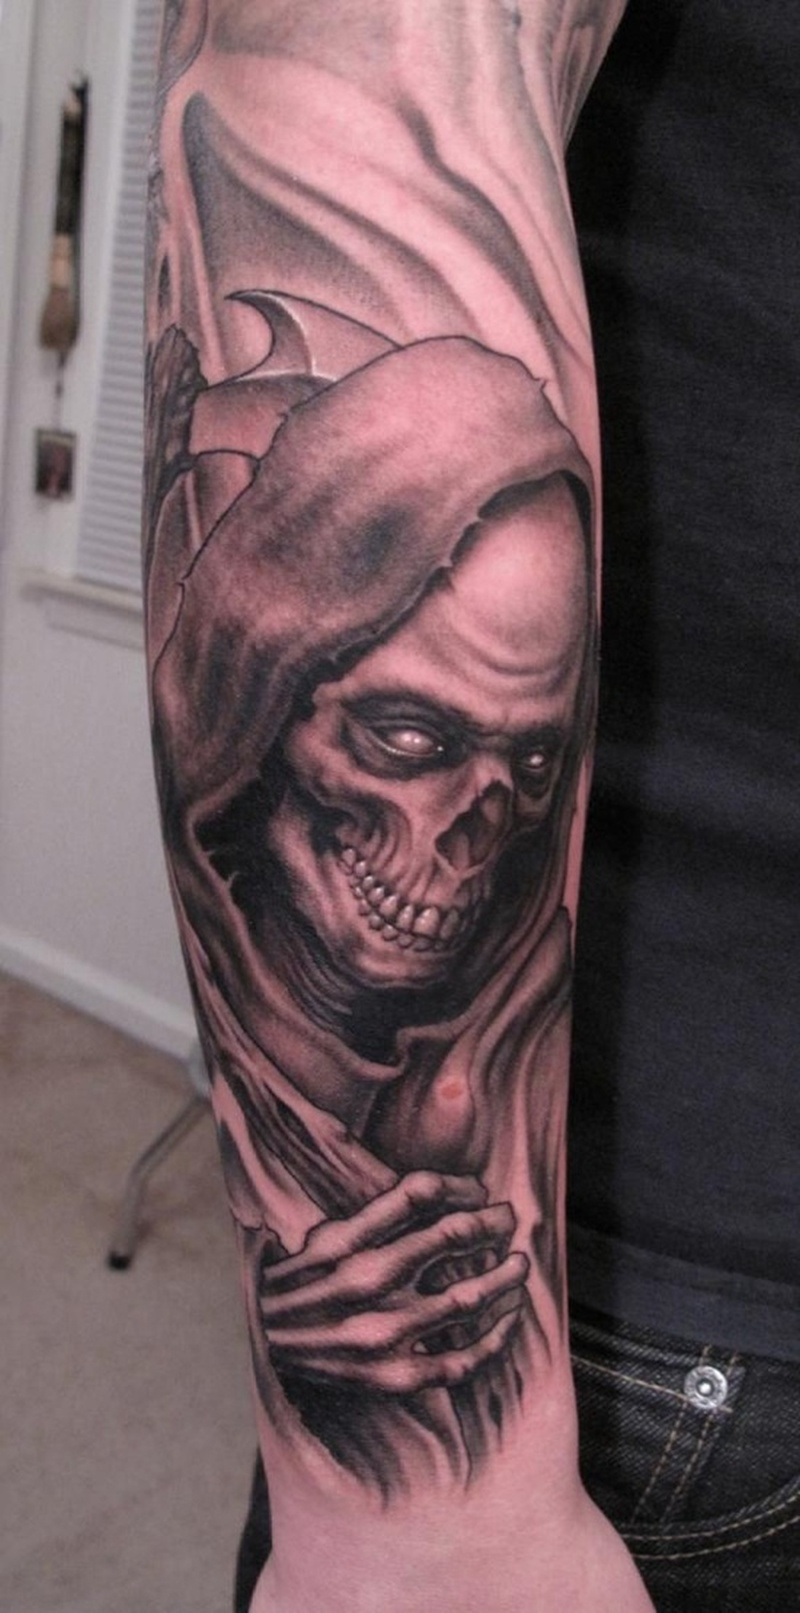 Full sleeve grim reaper tattoo design